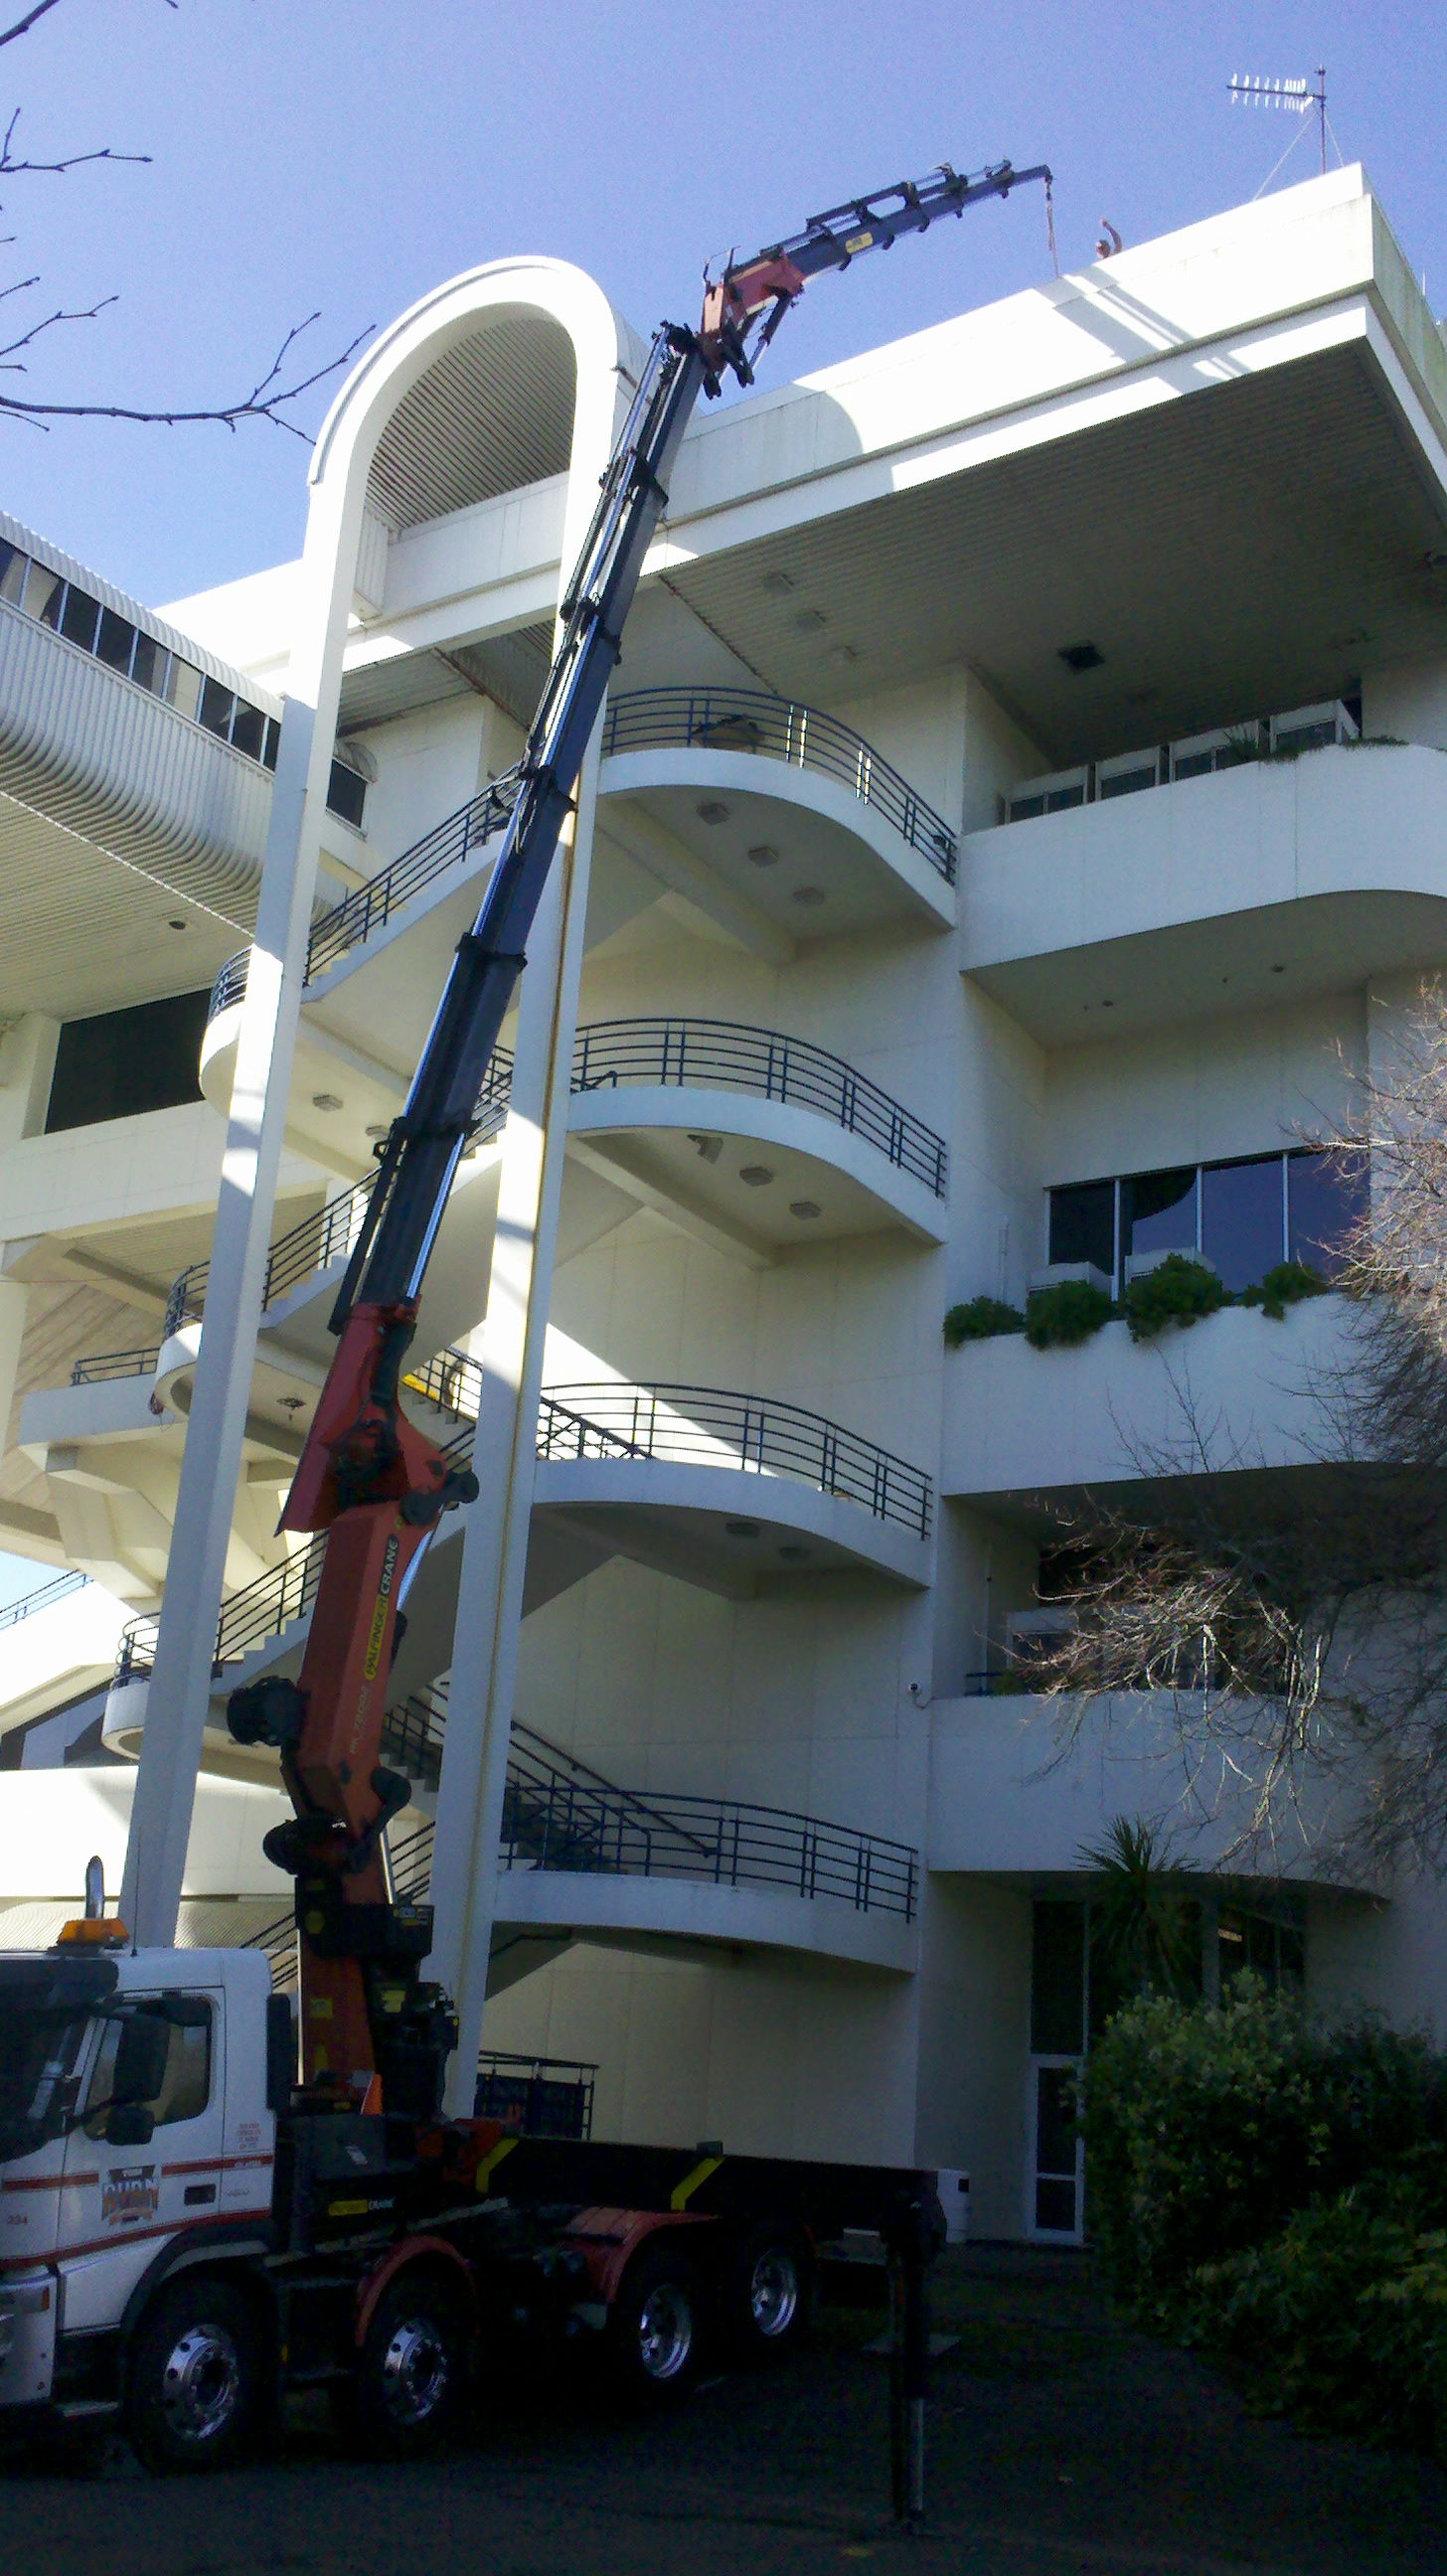 234 Crane lifting with Gib to roof of 4 story building.jpg